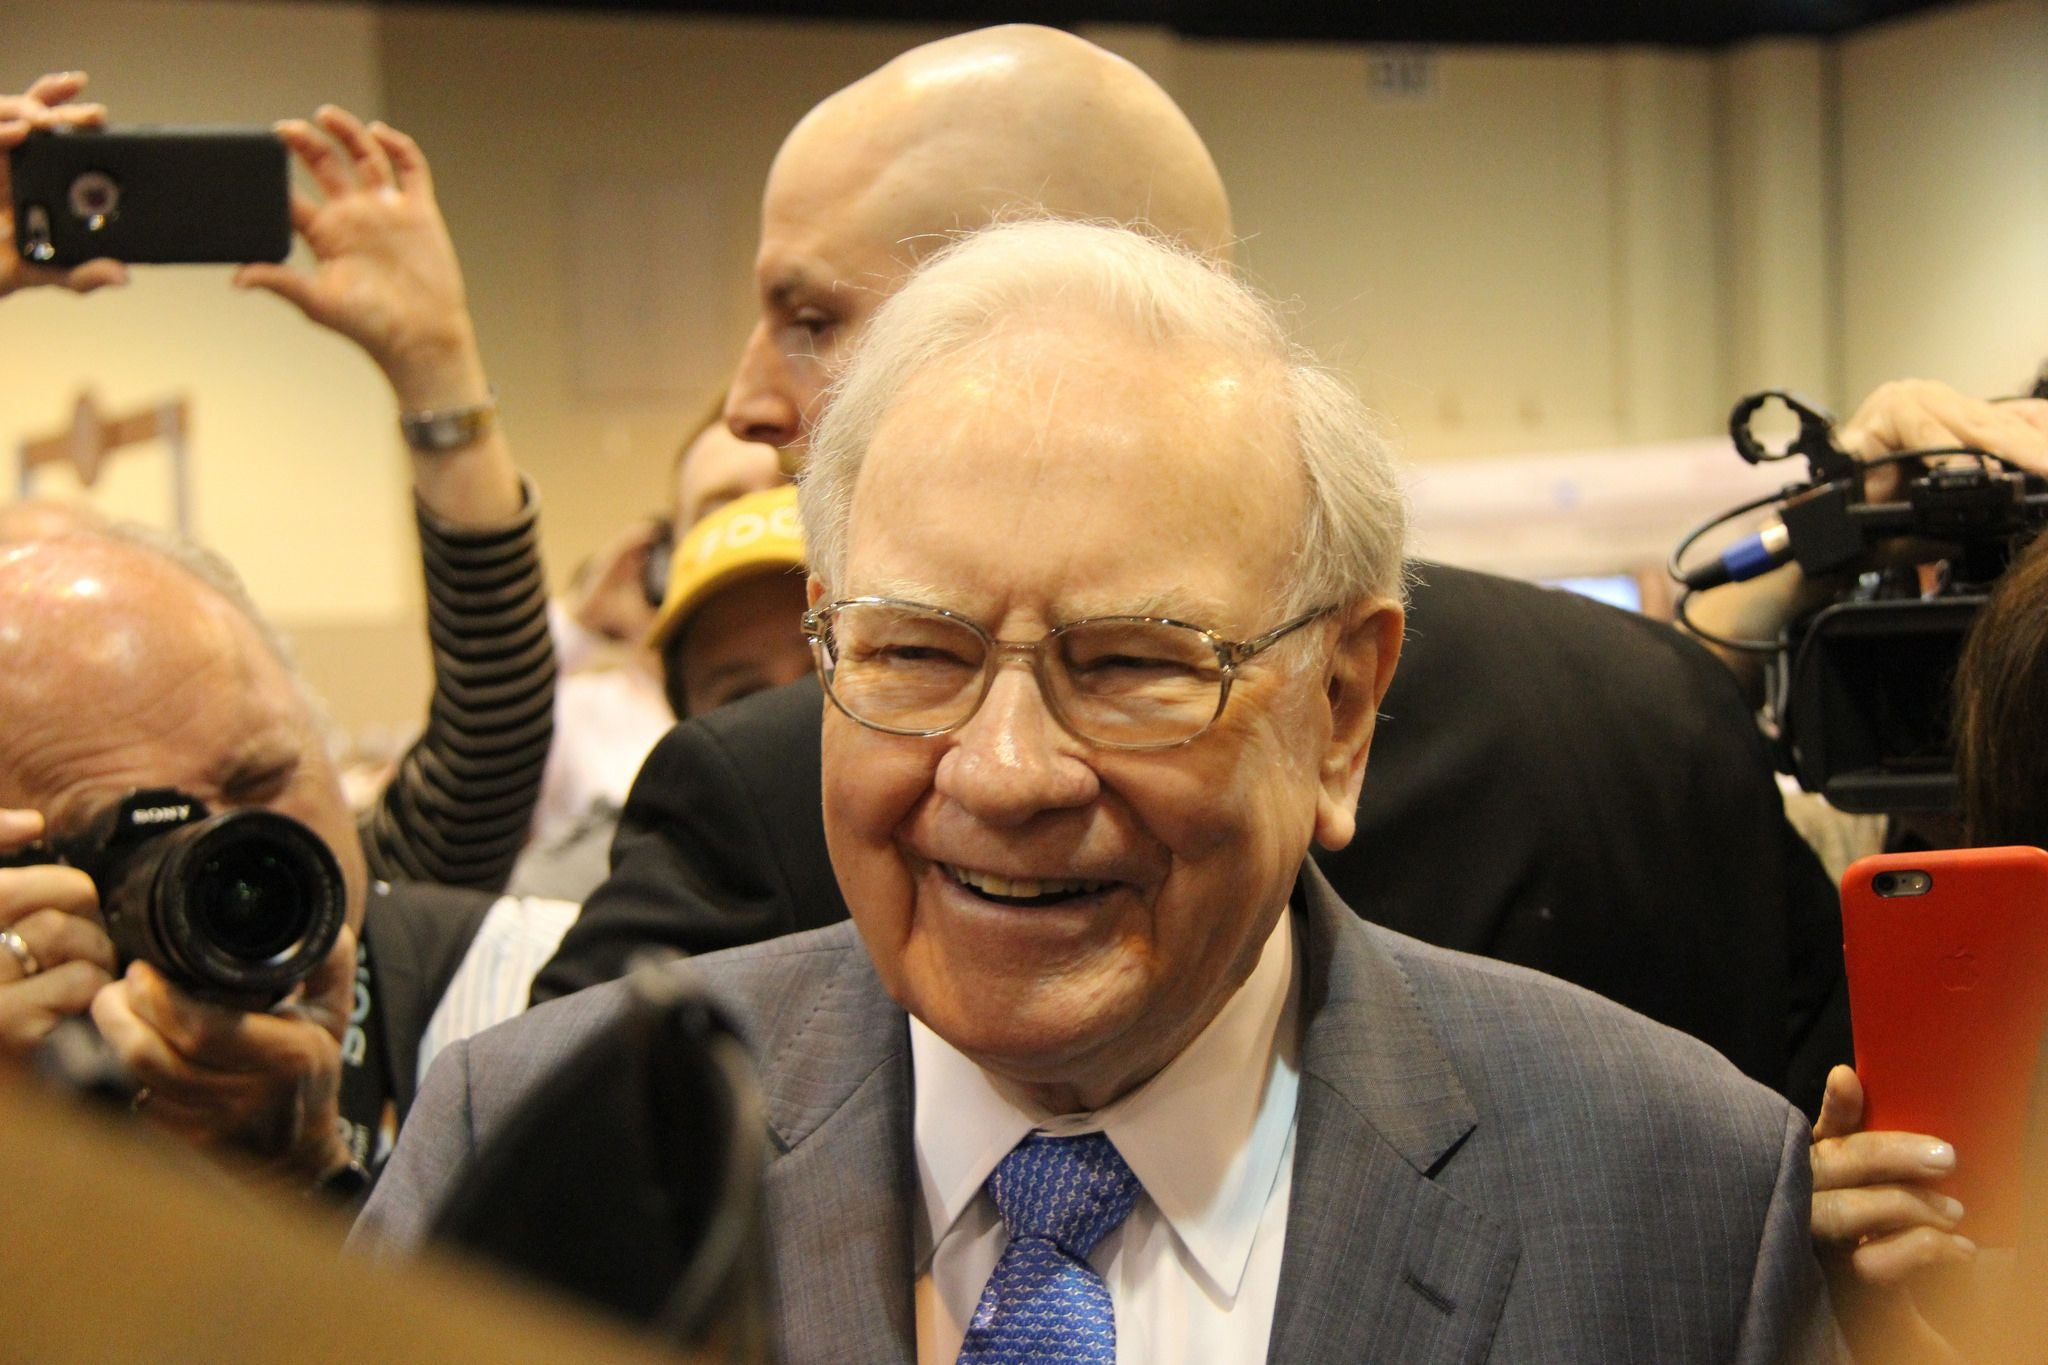 Warren Buffett Just Took Some of His Own Advice -- and Here's What He Bought | The Motley Fool